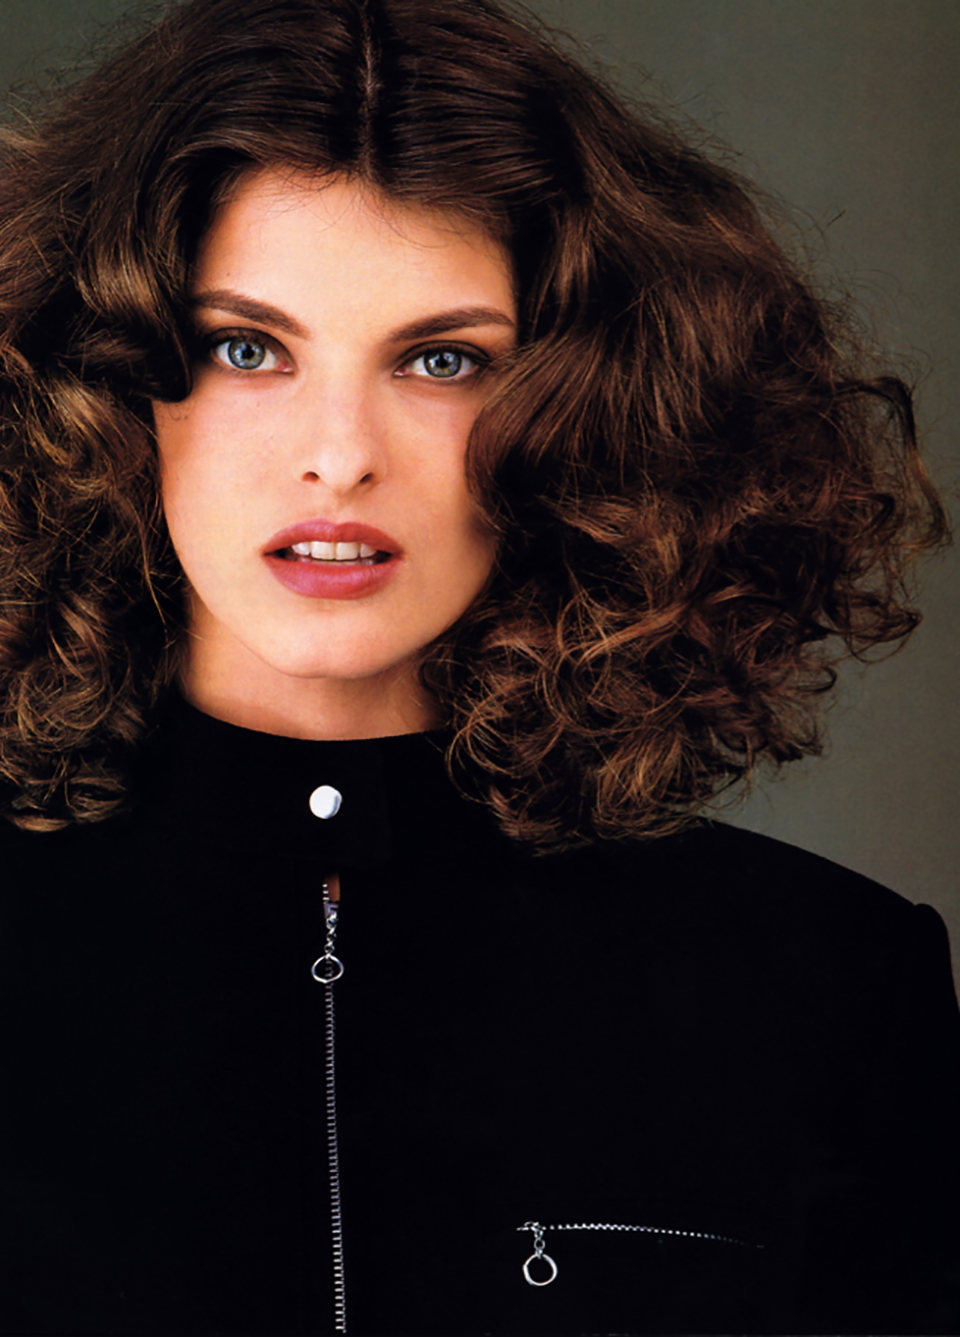 Linda Evangelista Covers The 35th Anniversary Issue Of: Face Of The '80s: Linda Evangelista